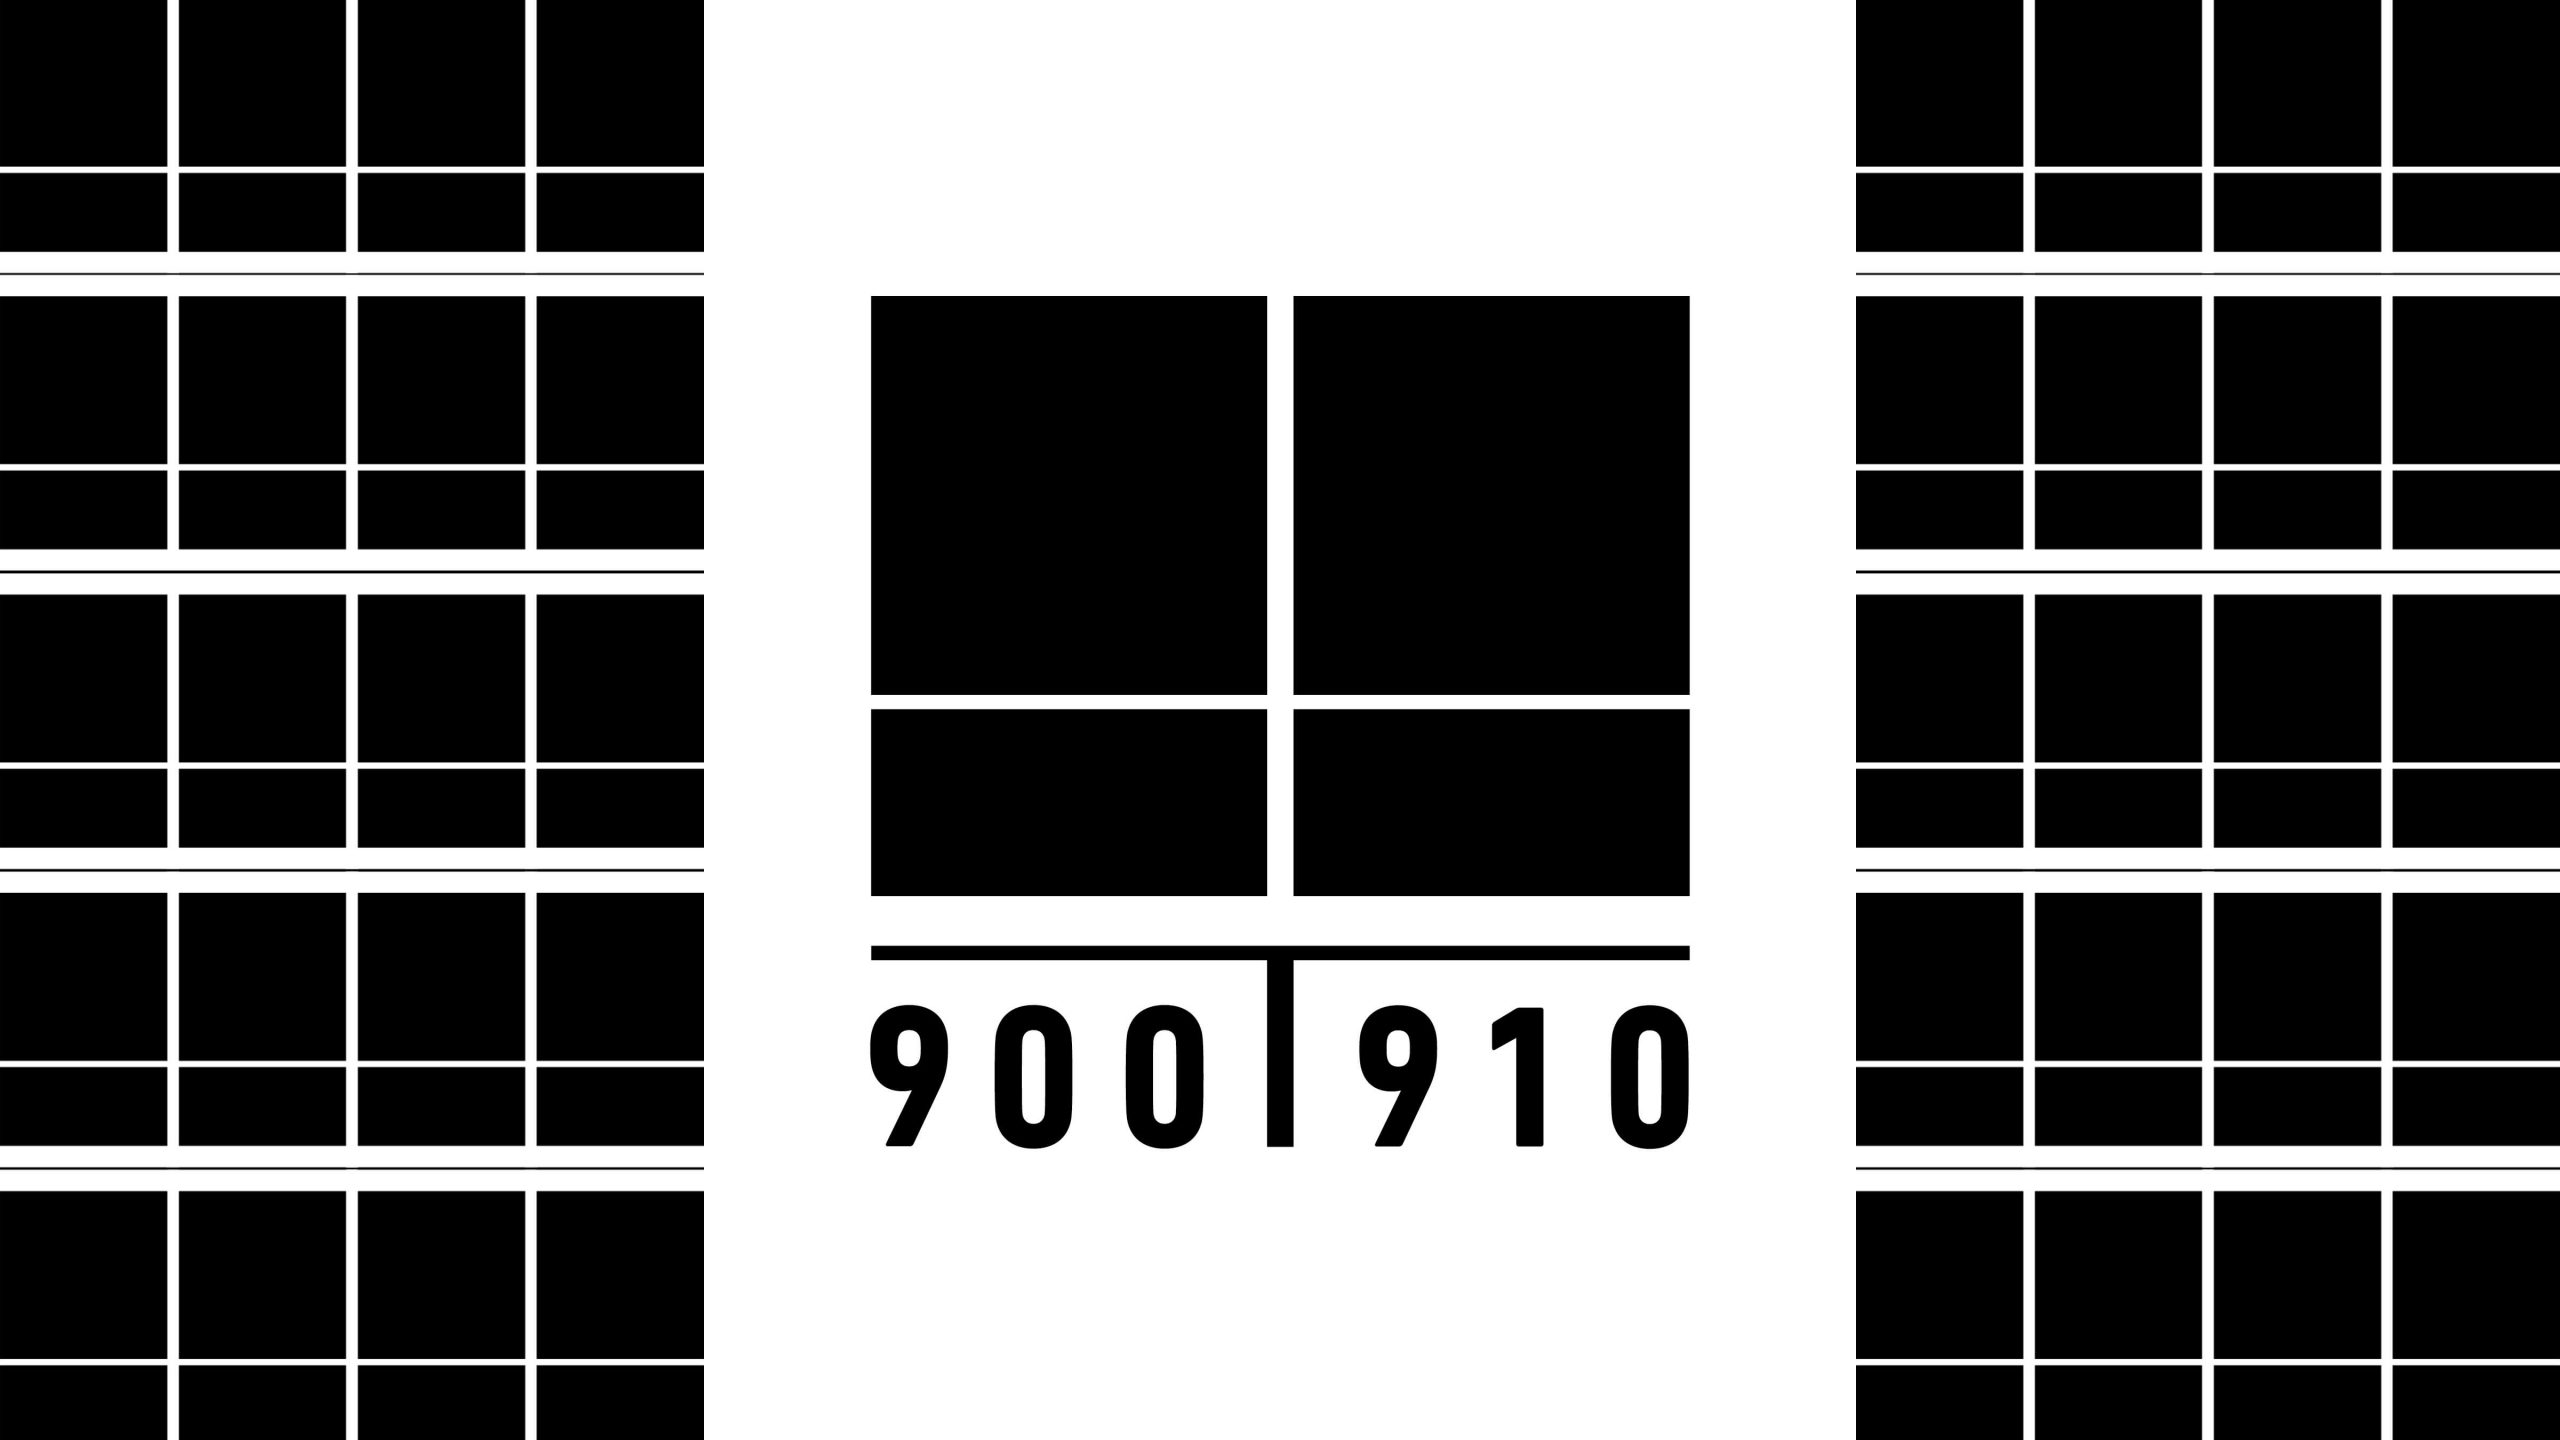 The New 900 910 Visual Identity: The Narrative takes us behind-the-scenes of the buildings' rebrand